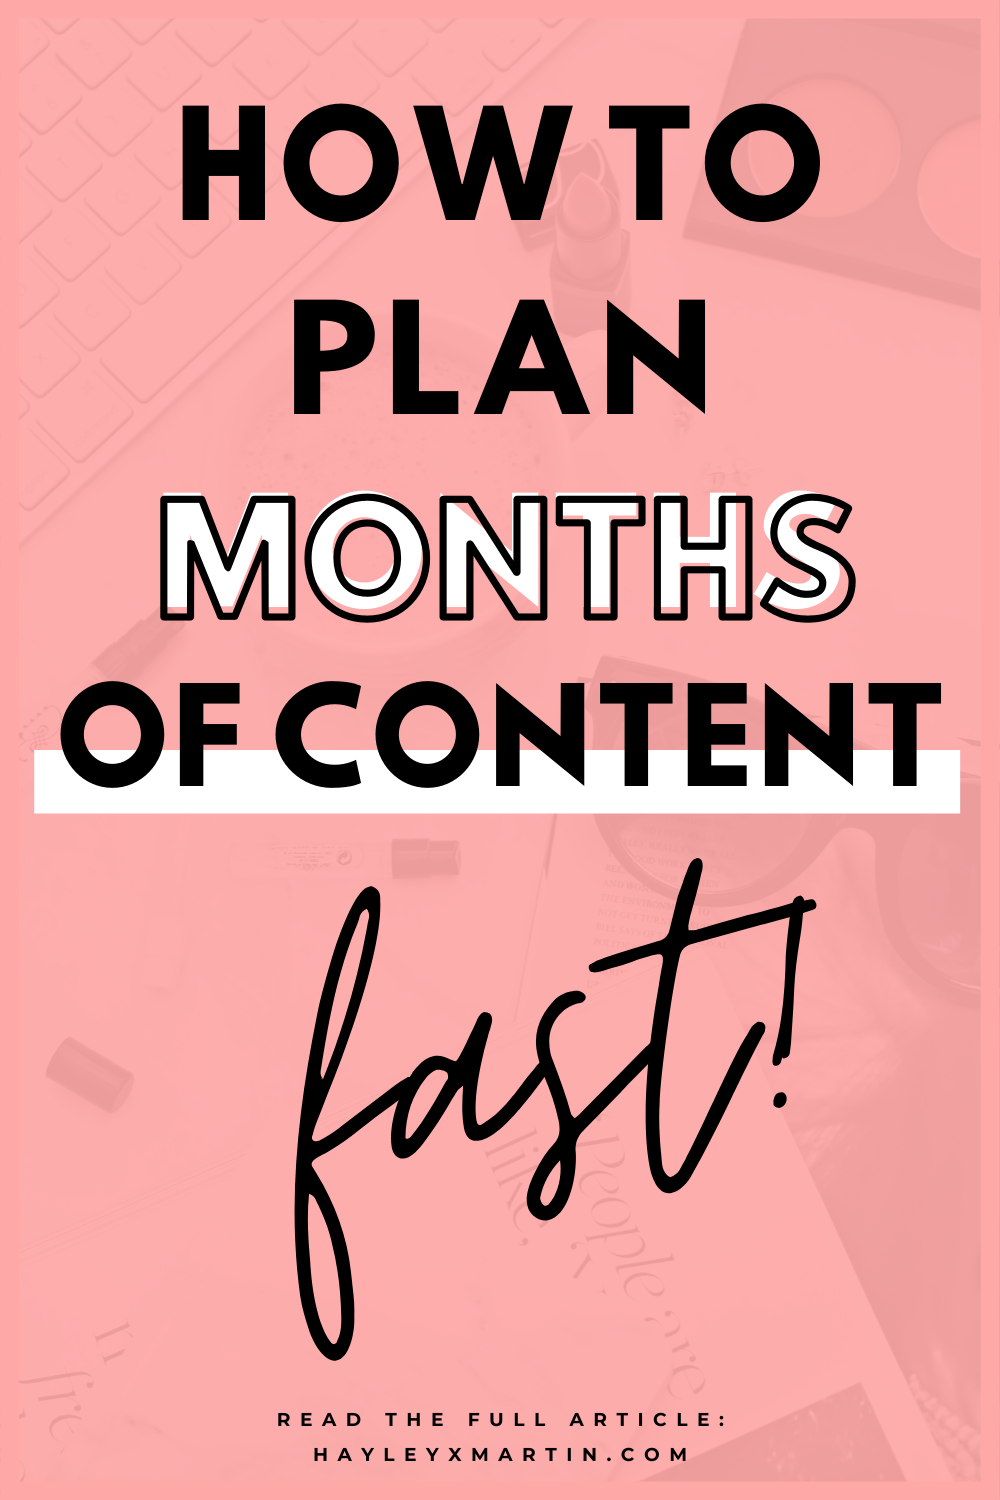 HOW TO PLAN MONTHS OF CONTENT, FAST | HAYLEYXMARTIN